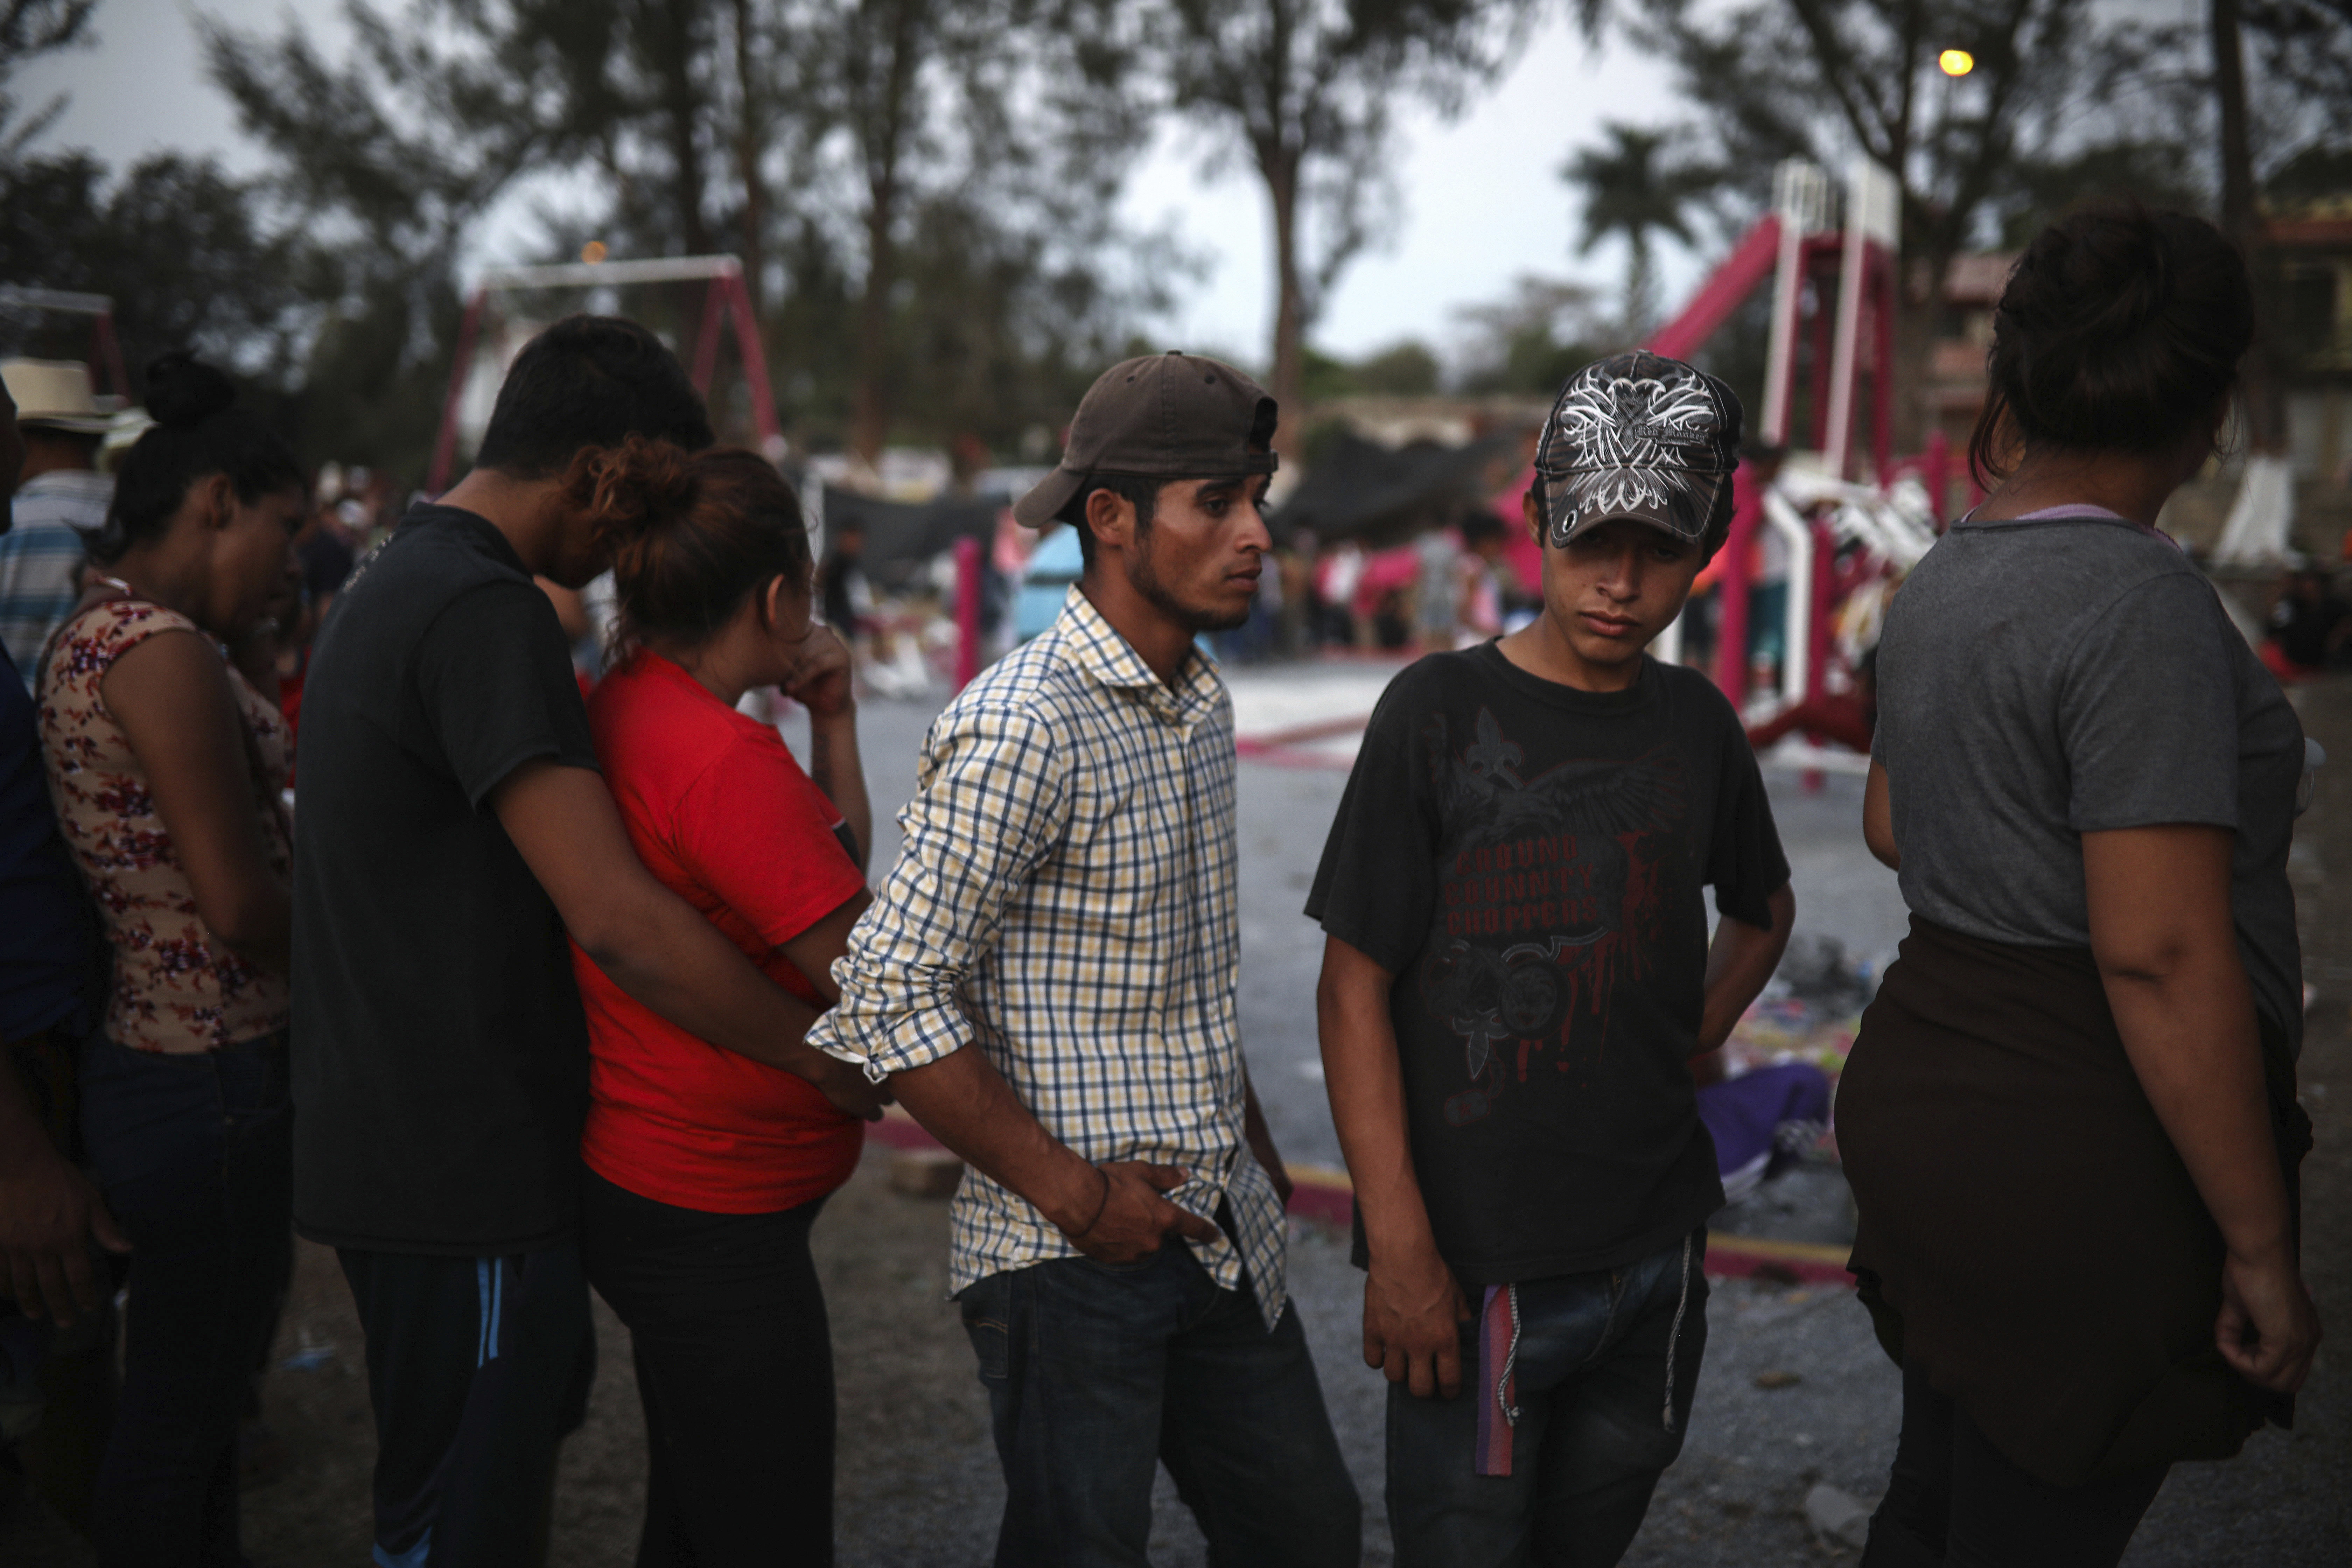 Central American migrants stand in line to start their documentation with a Mexican immigration official during the Migrant Stations of the Cross caravan as the group makes a stop at a sports center in Matias Romero, Oaxaca state, Mexico, late Monday, April 2, 2018. The annual caravans have been held in southern Mexico for years as an Easter-season protest against the kidnappings, extortion, beatings and killings suffered by many Central American migrants as they cross Mexico. (AP Photo/Felix Marquez)